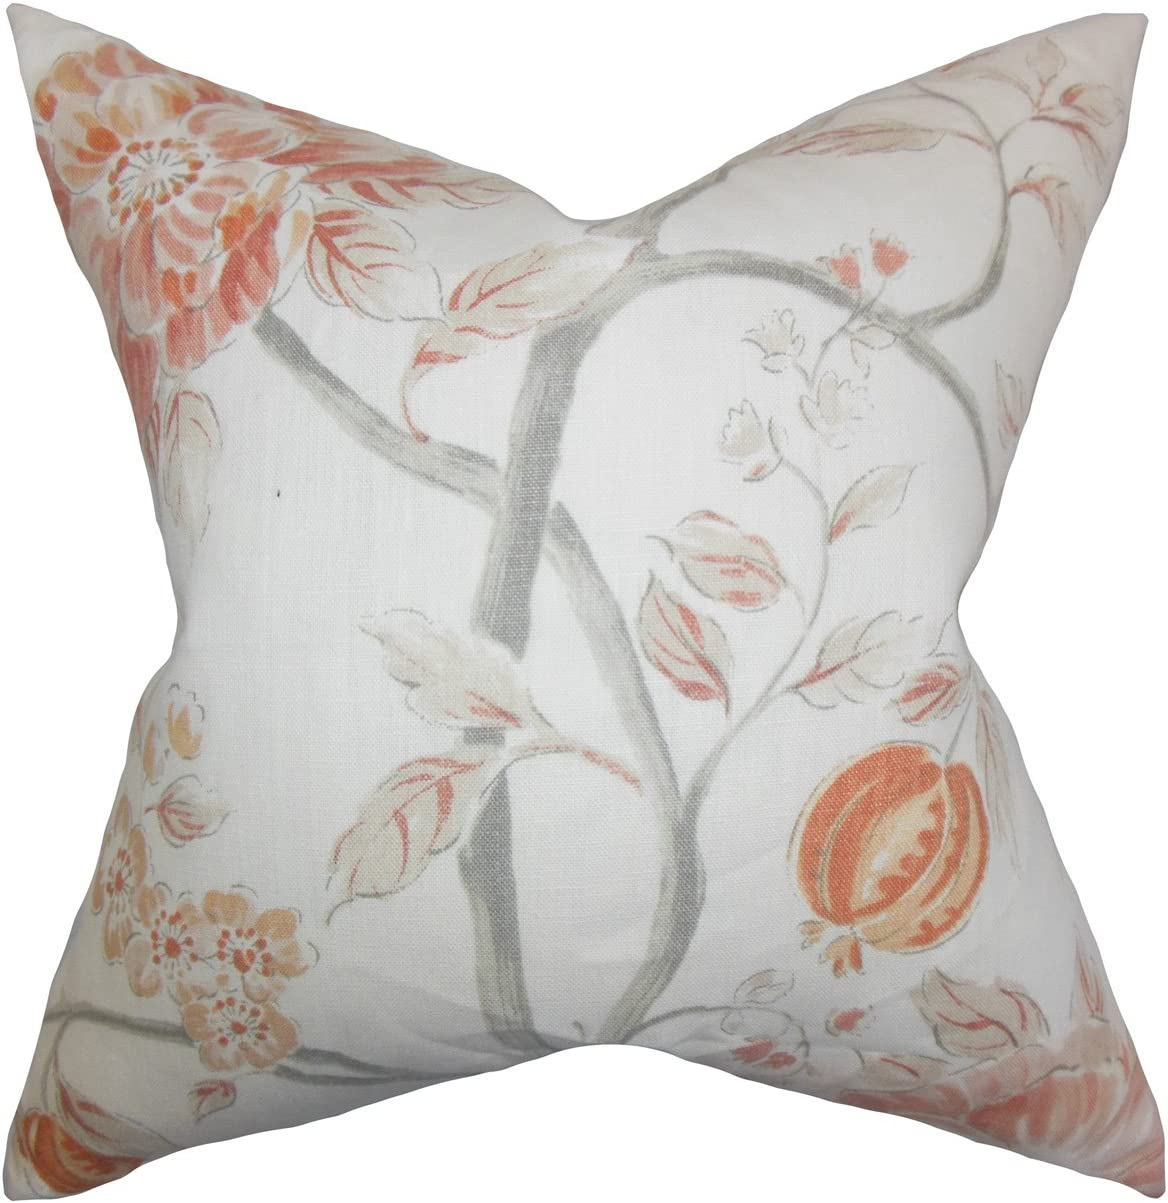 The Pillow Collection Ivria Floral Bedding Sham Bloom King//20 x 36